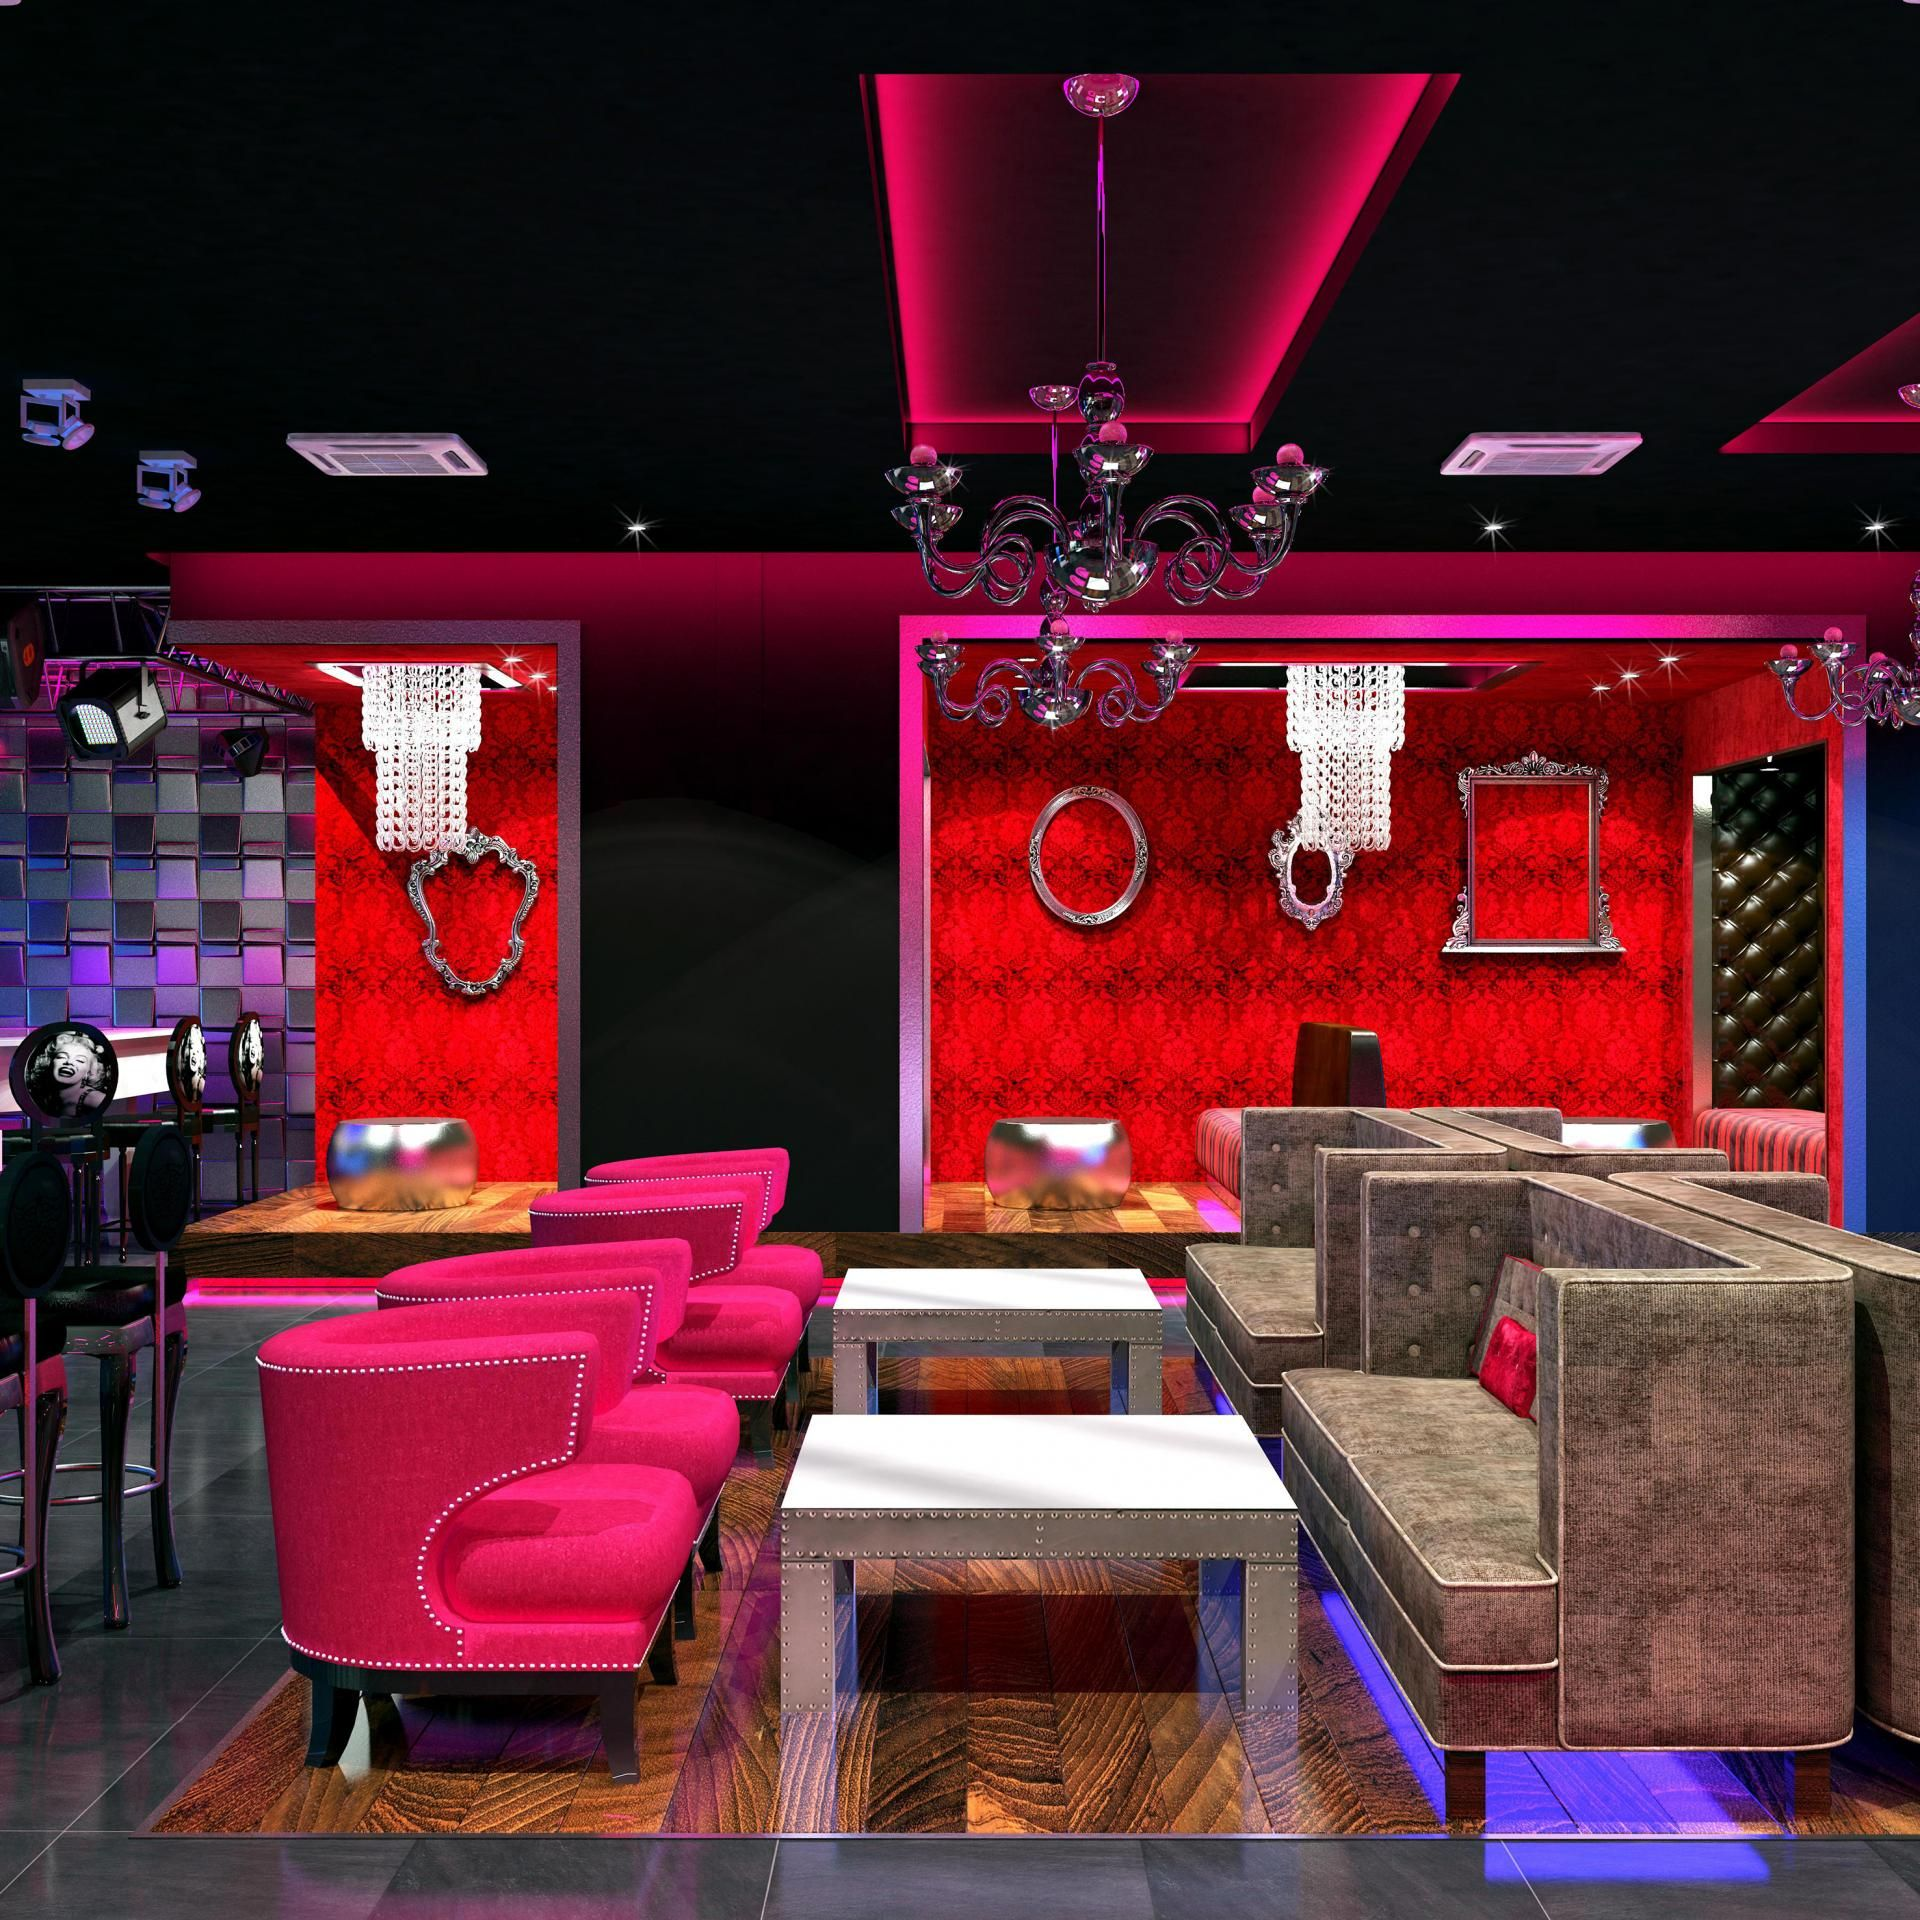 COSMOPOLITAN LUXURY: Blue Martini Bar Interior Fit-out by Extreme Design Studio